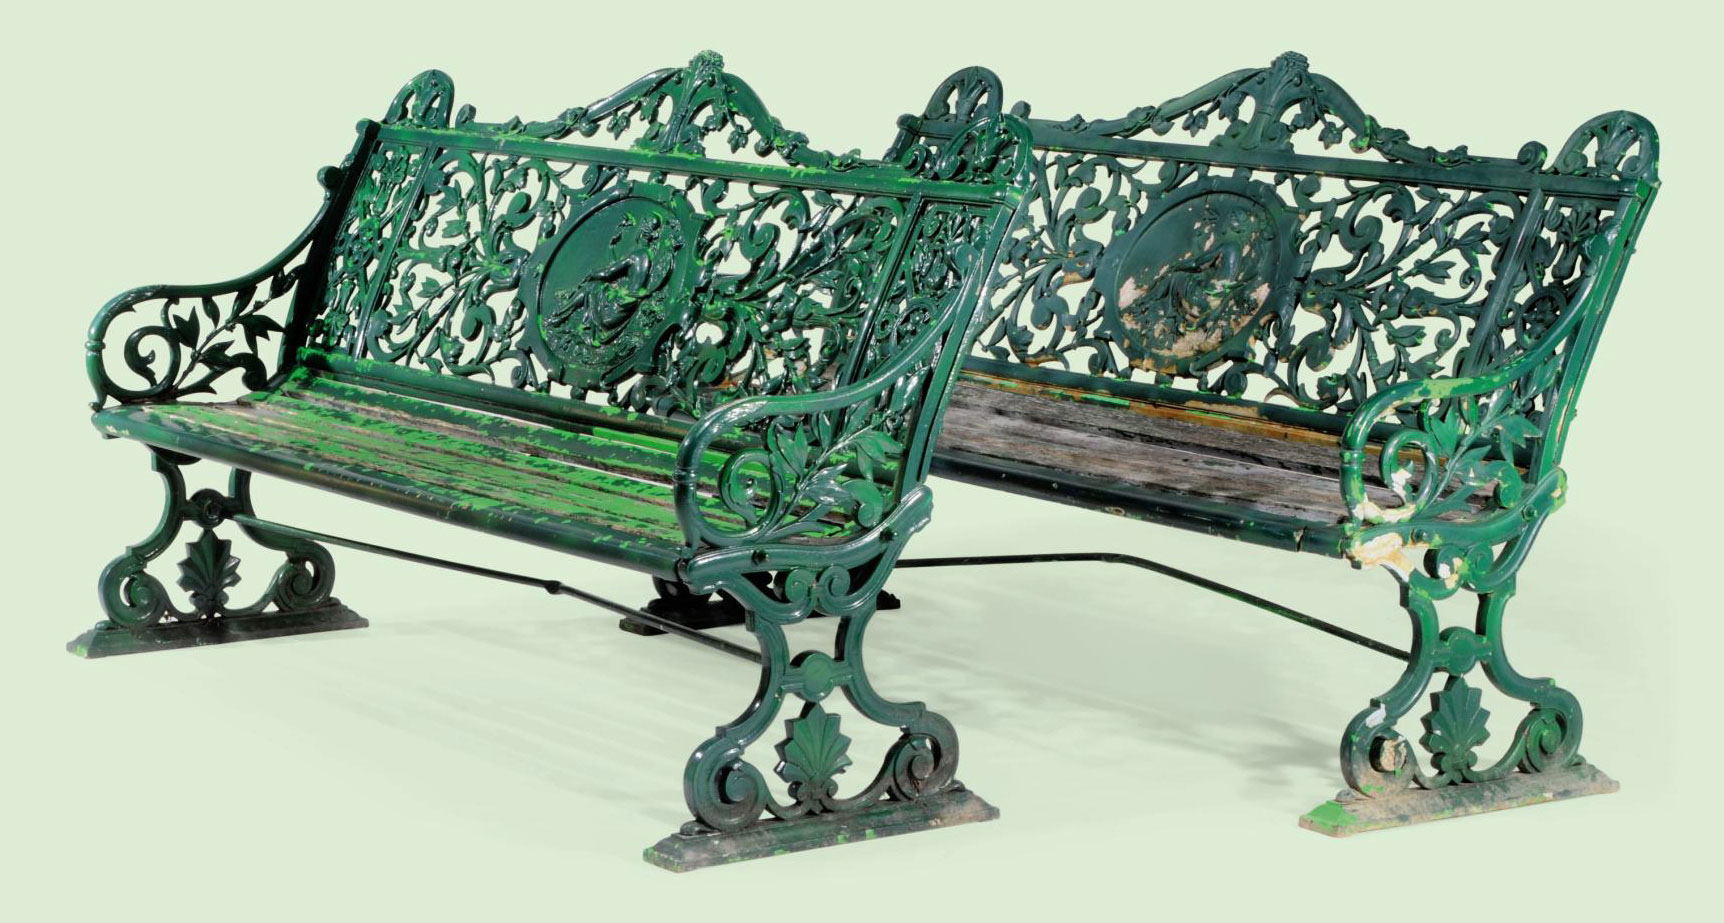 TWO LATE VICTORIAN GREEN-PAINTED 'MEDALLION' PATTERN CAST-IRON SEATS